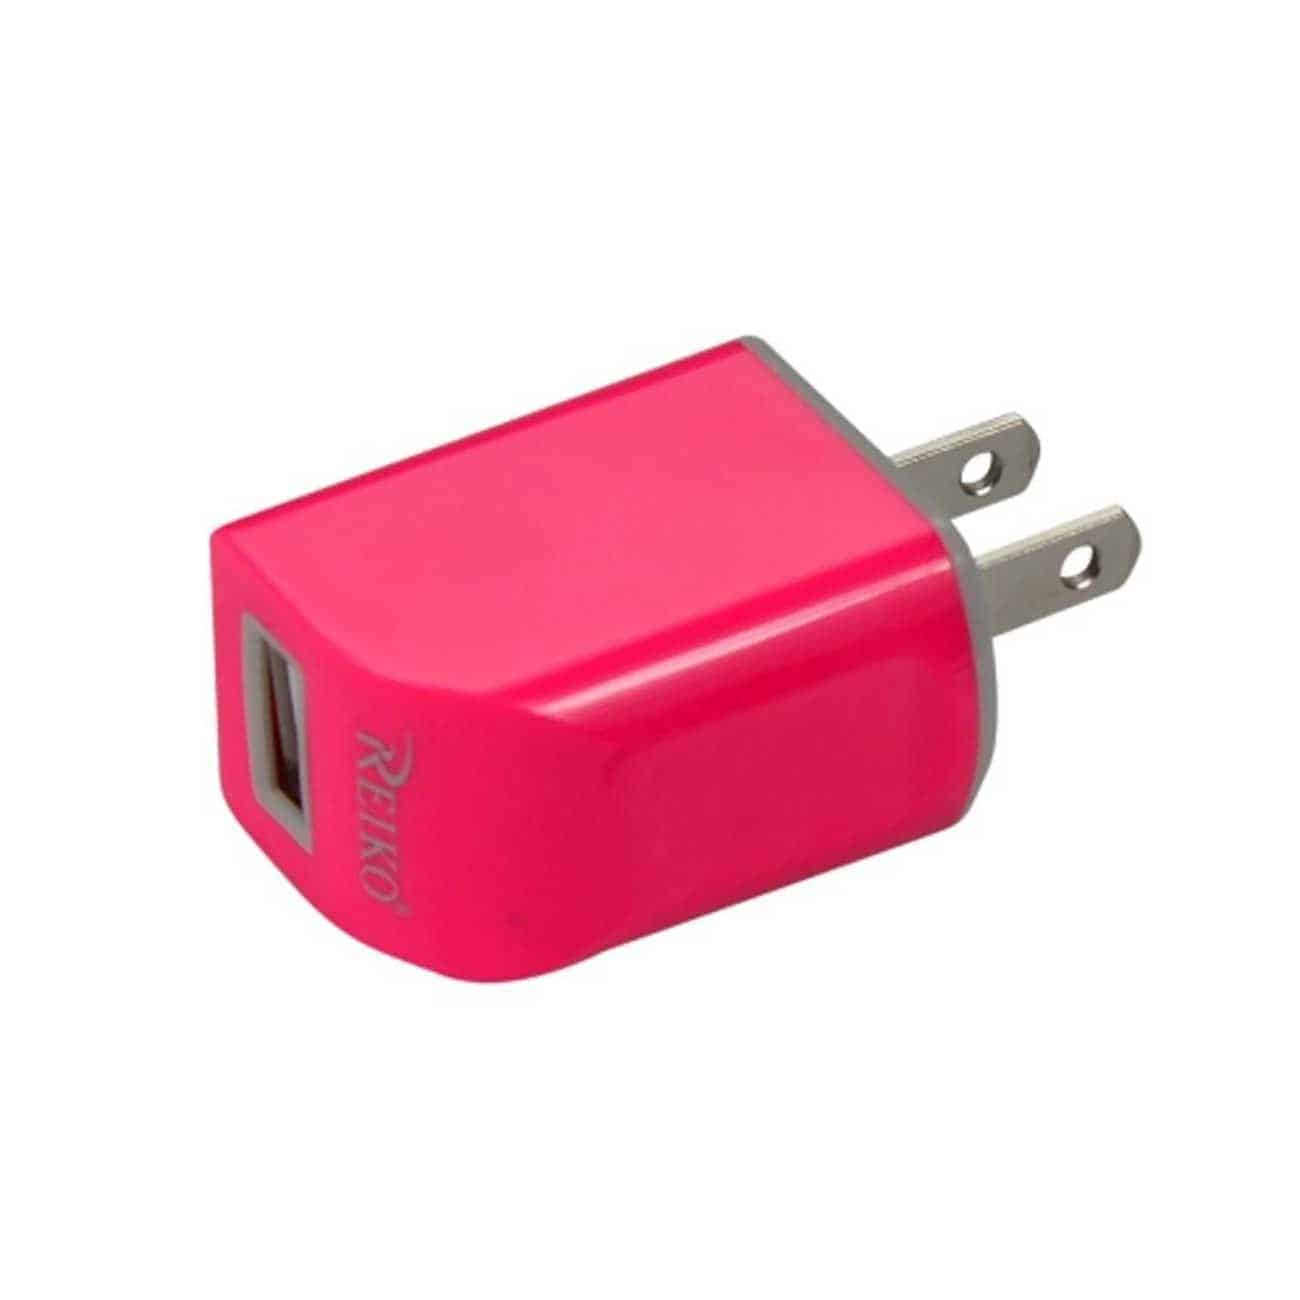 MICRO USB 1 AMP PORTABLE MICRO TRAVEL ADAPTER CHARGER WITH CABLE IN HOT PINK